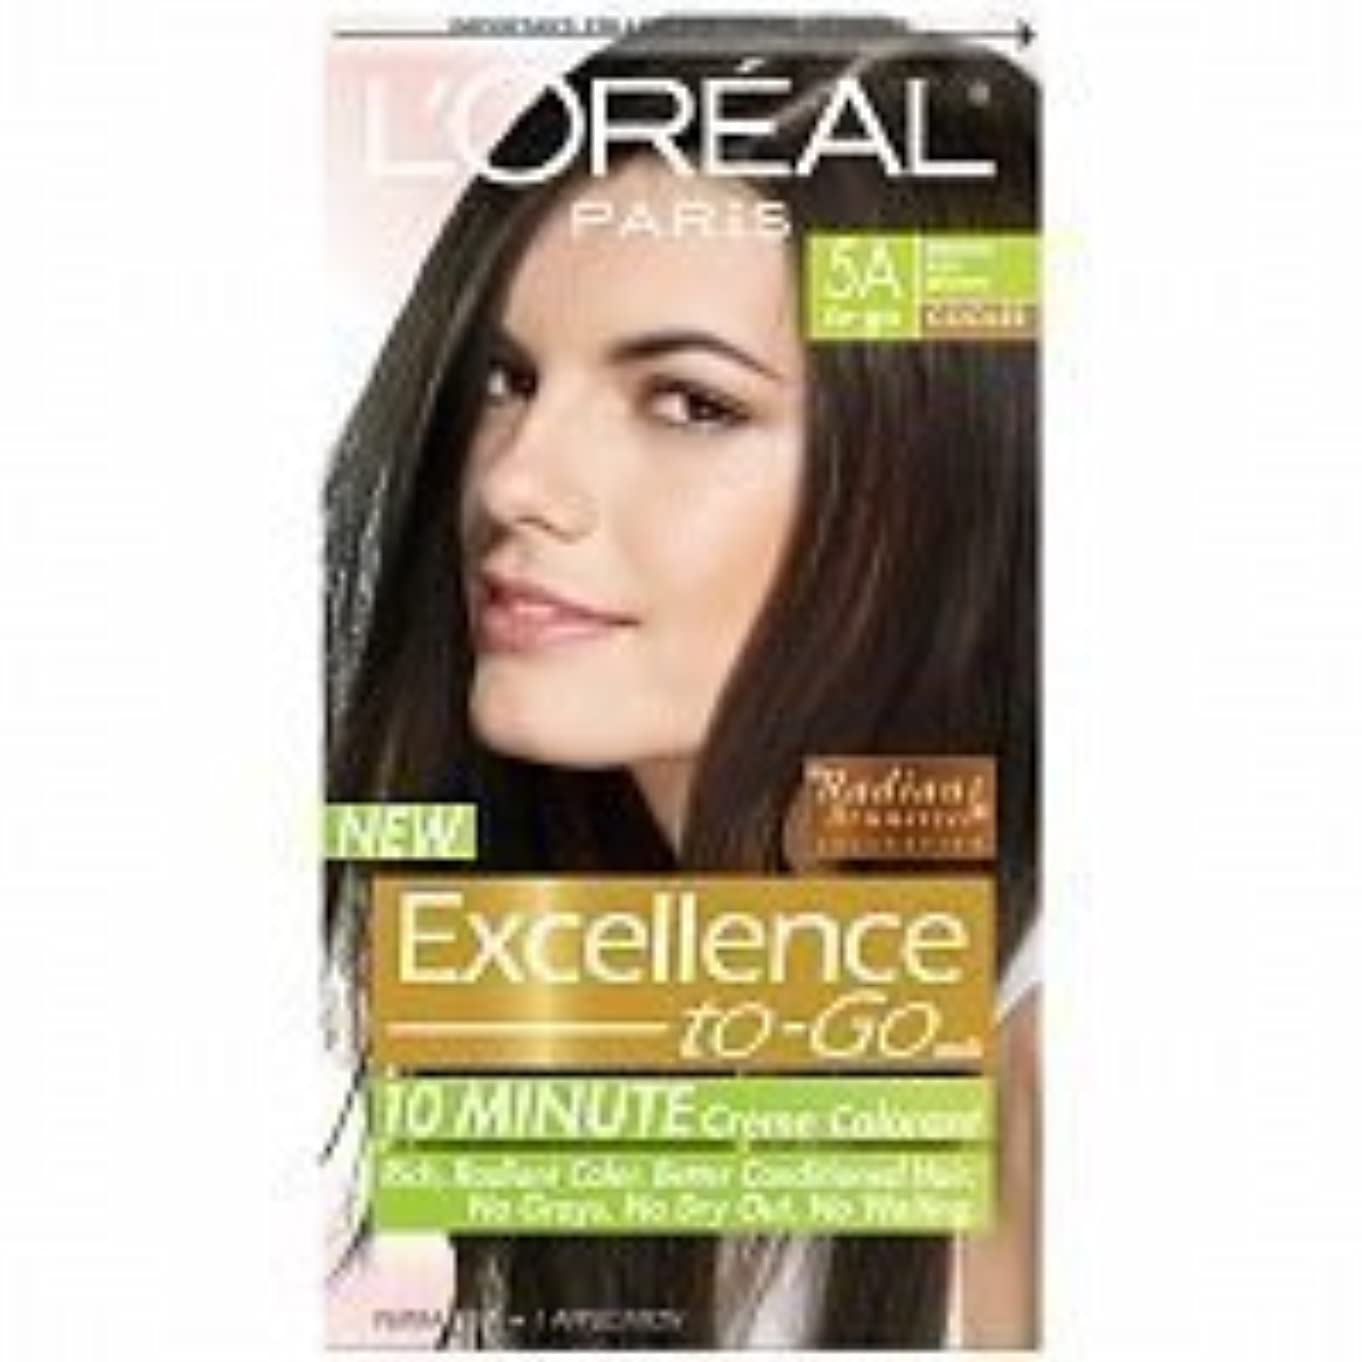 アドバンテージ騒乱そしてL'Oreal Paris Excellence To-Go 10-Minute Cr?N?Nme Coloring, Medium Ash Brown 5A by L'Oreal Paris Hair Color [並行輸入品]